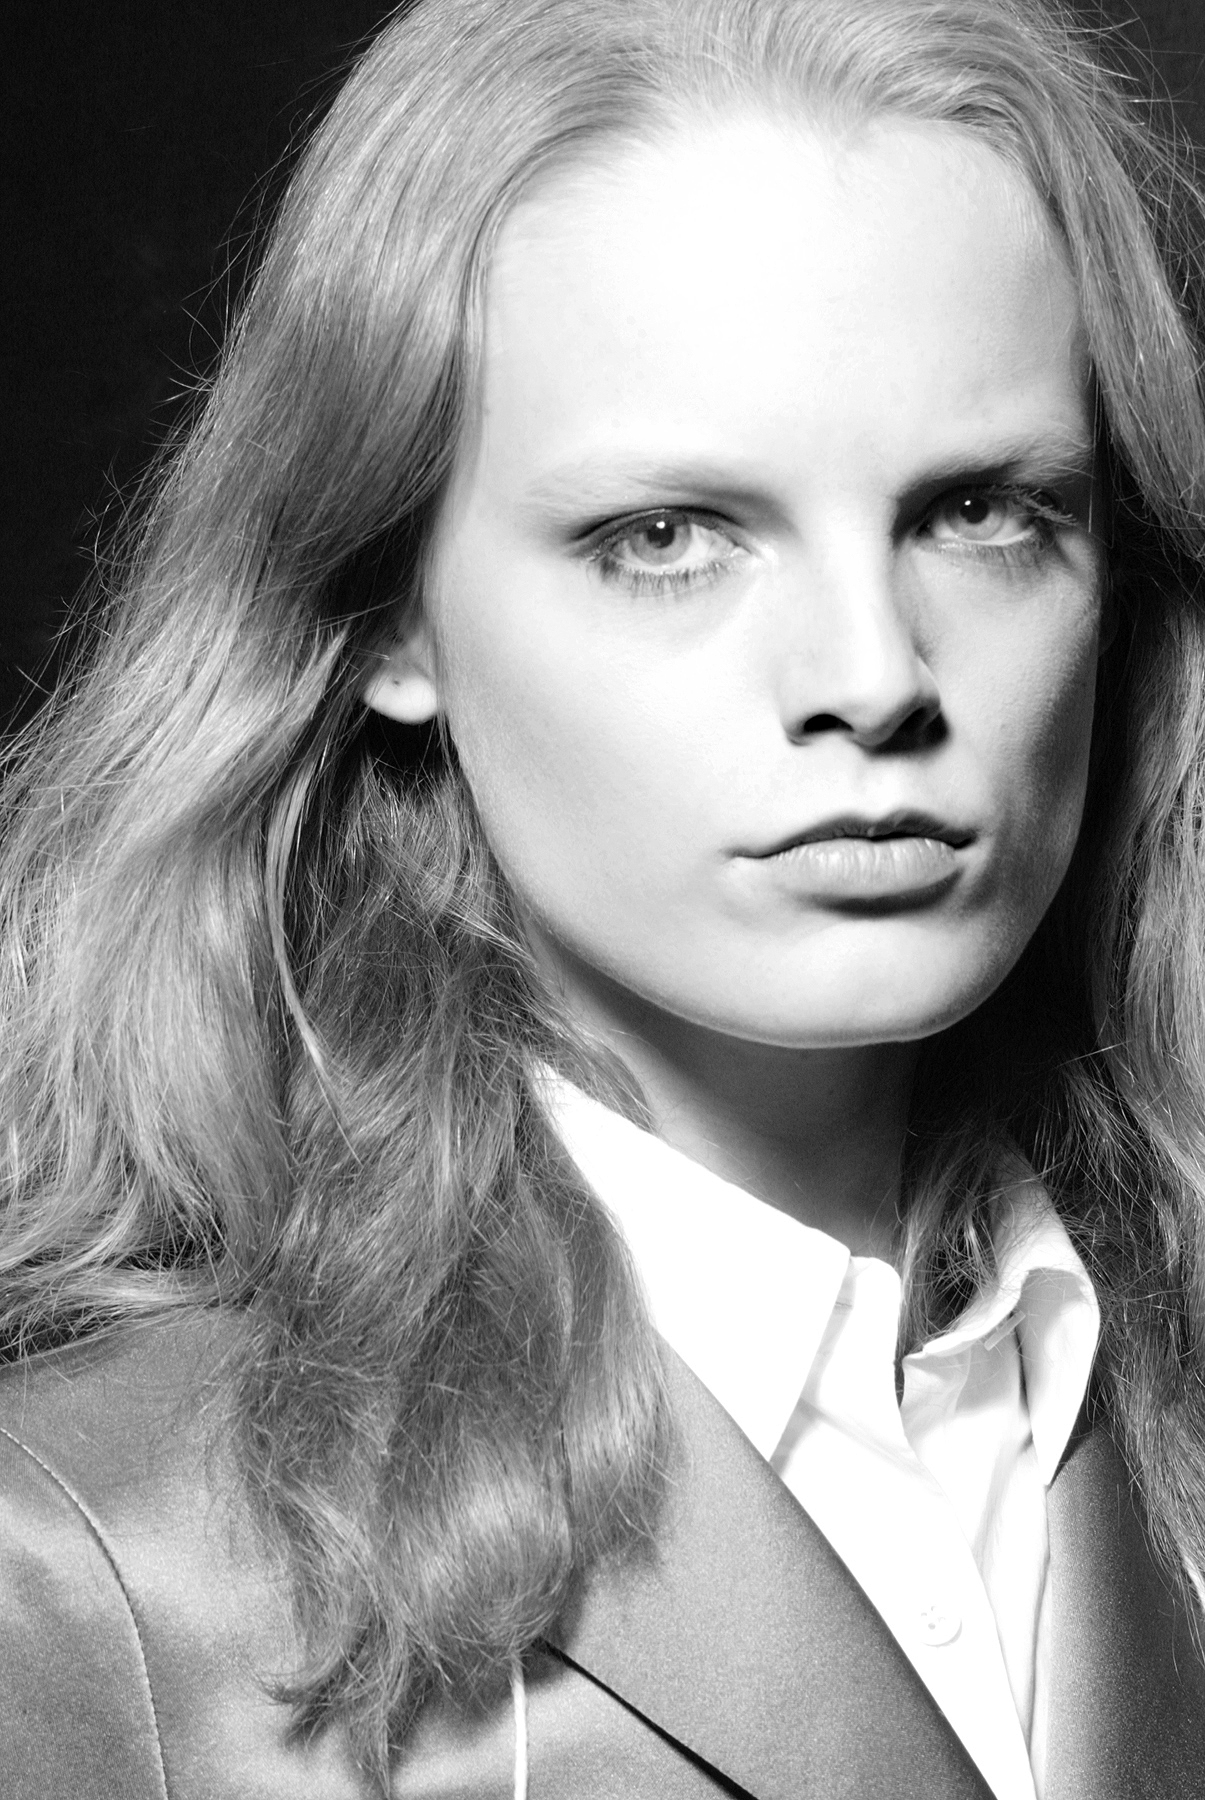 The 29-year old daughter of father (?) and mother(?) Hanne Gaby Odiele in 2018 photo. Hanne Gaby Odiele earned a  million dollar salary - leaving the net worth at 8 million in 2018